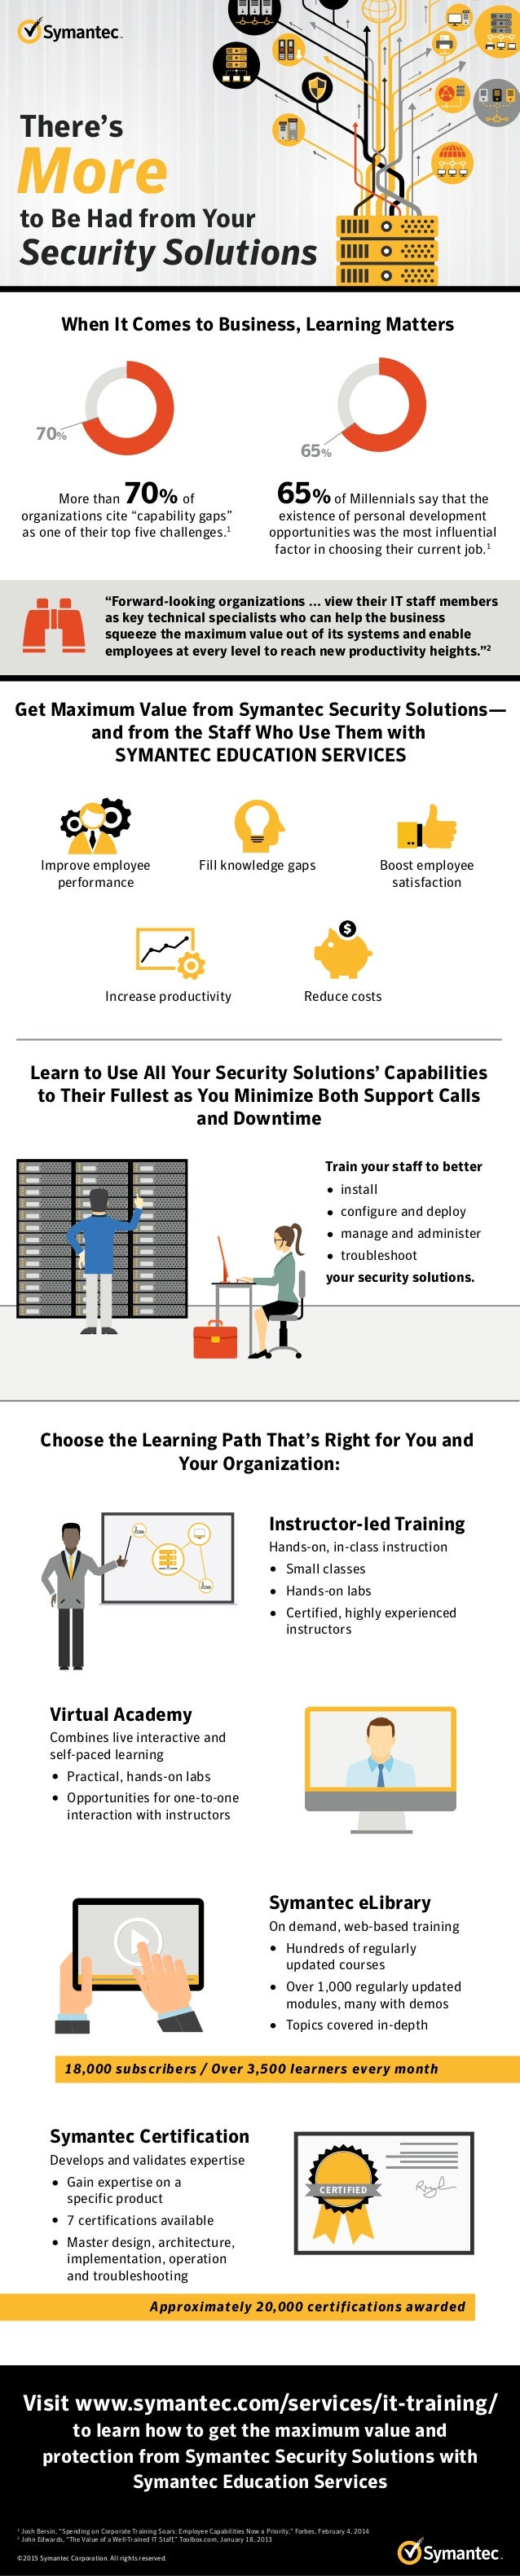 Visit www.symantec.com/services/it-training/ to learn how to get the maximum value and protection from Symantec Security S...